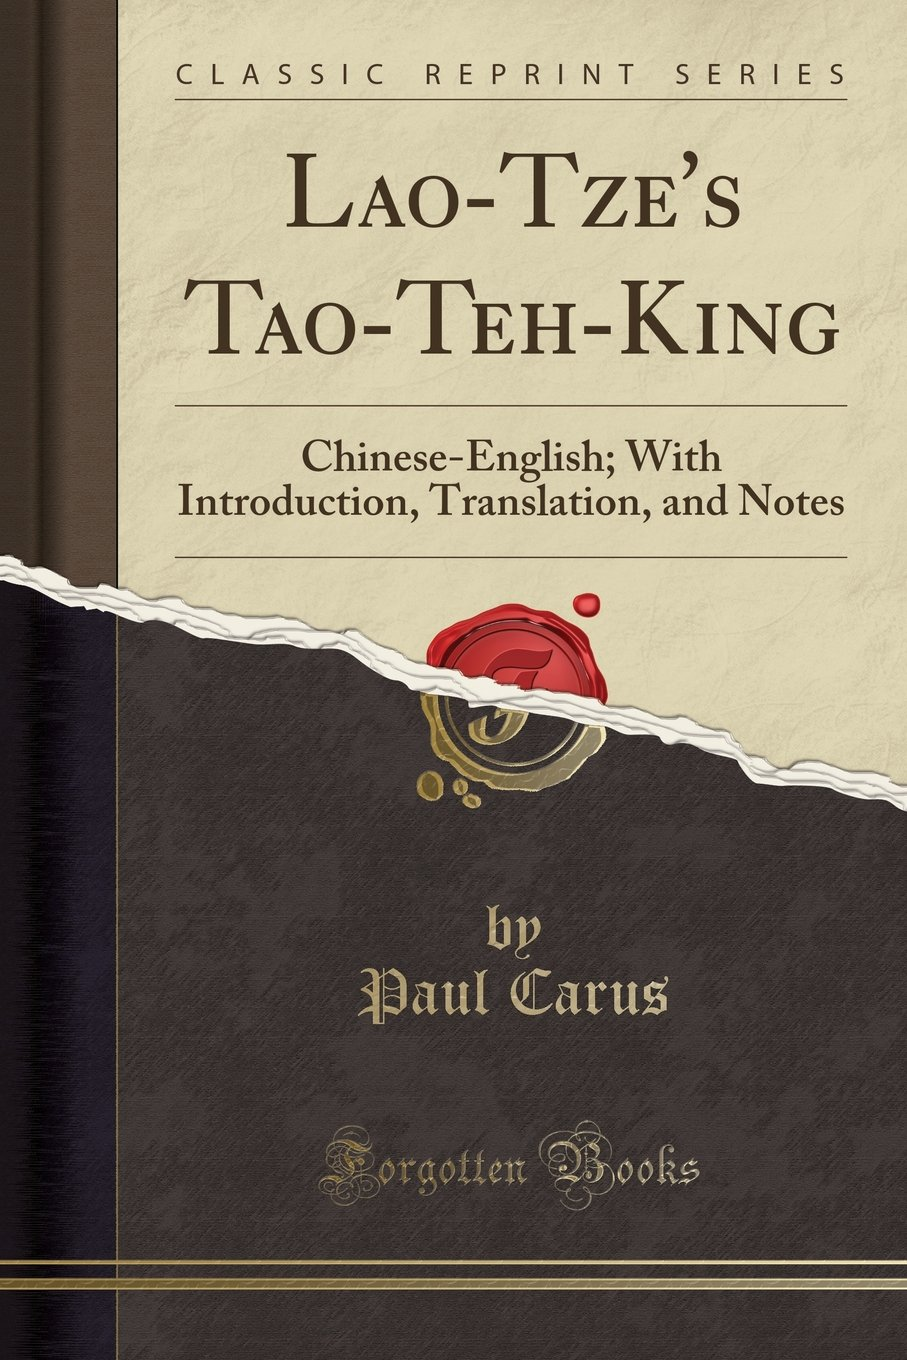 Lao-Tze's Tao-Teh-King: Chinese-English; With Introduction,  Transliteration, and Notes (Classic Reprint) Paperback – April 19, 2018